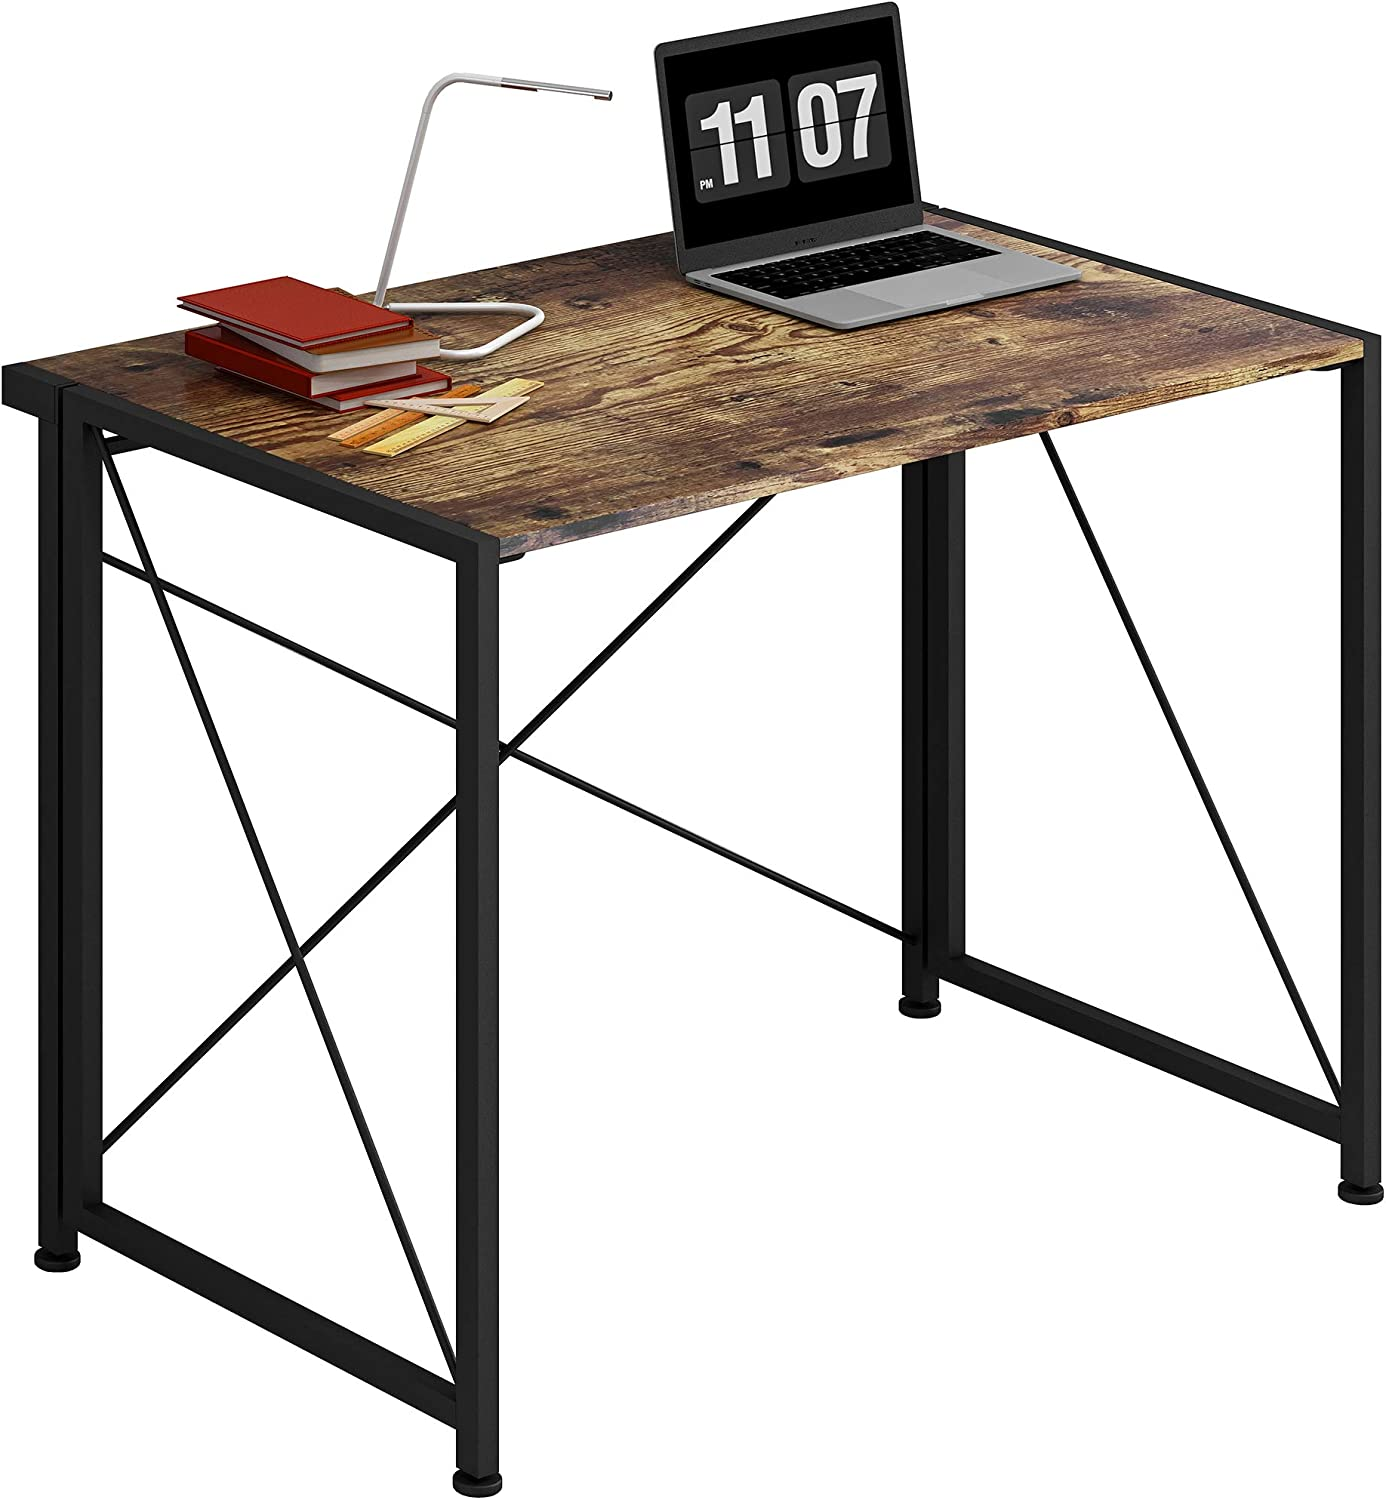 4NM No-Assembly Folding Desk Small Computer Desk Laptop Table Compact Home Office Desk Study Reading Table for Space Saving Office Table (Rustic Brown and Black)